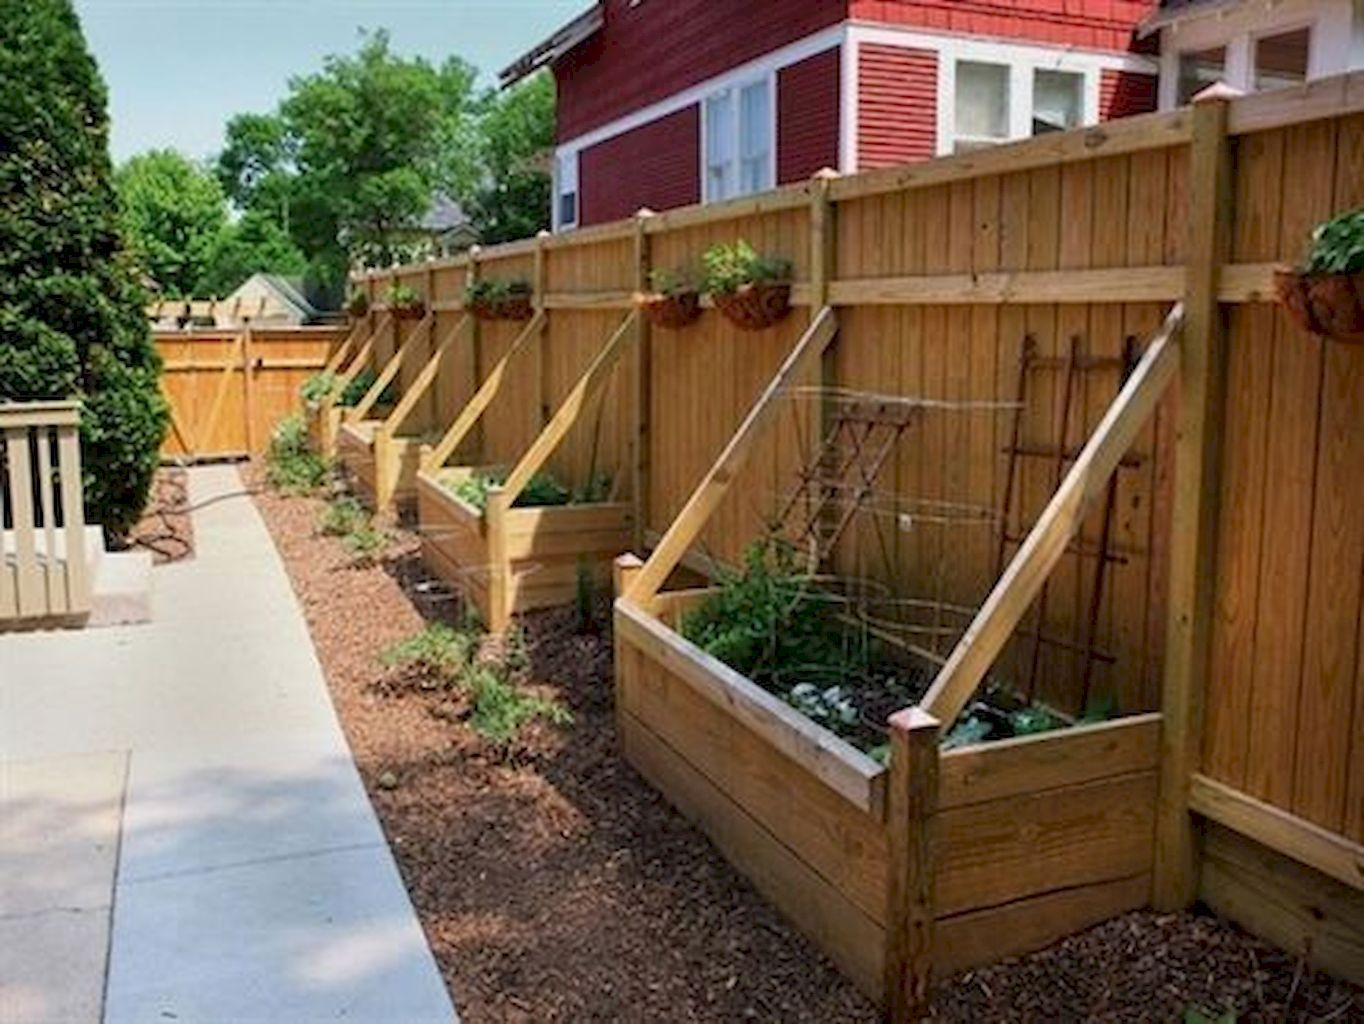 65 inspired backyard privacy fence design ideas privacy on backyard garden fence decor ideas id=50631